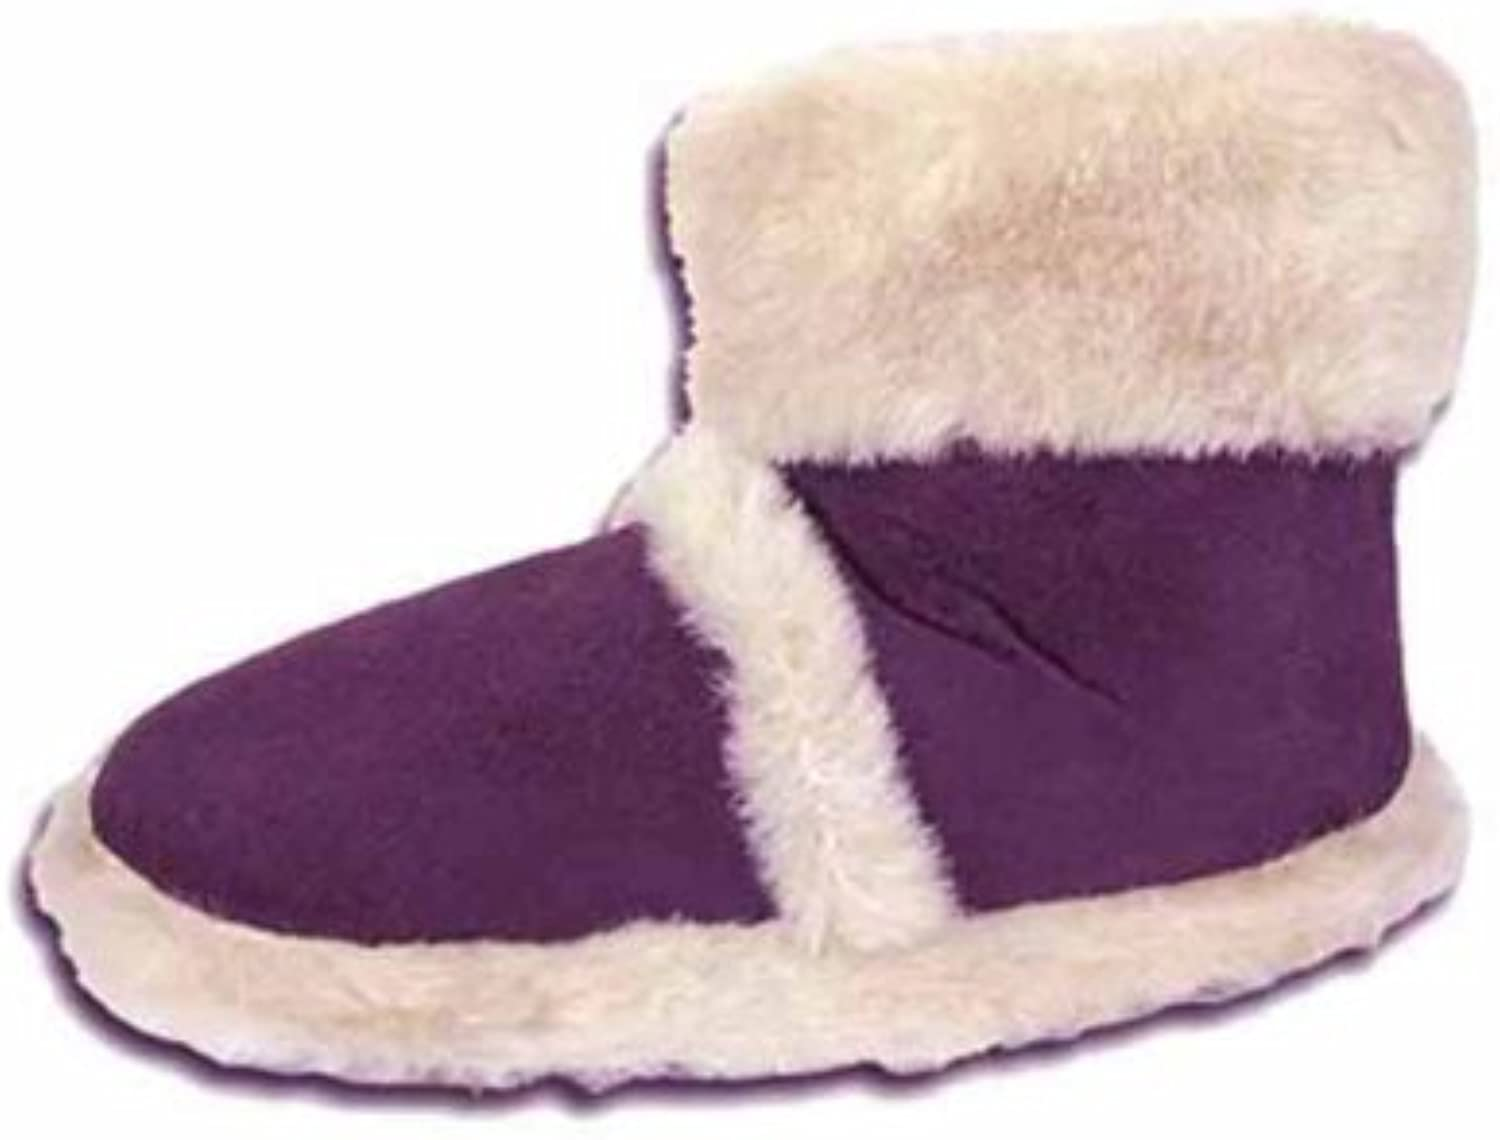 Coolers Mesdames refroidisseurs Fourrure Bottines Chausson Chaussons Tailles 3–8B00E6NYK1MParent 3–8B00E6NYK1MParent Tailles 9ecbd3